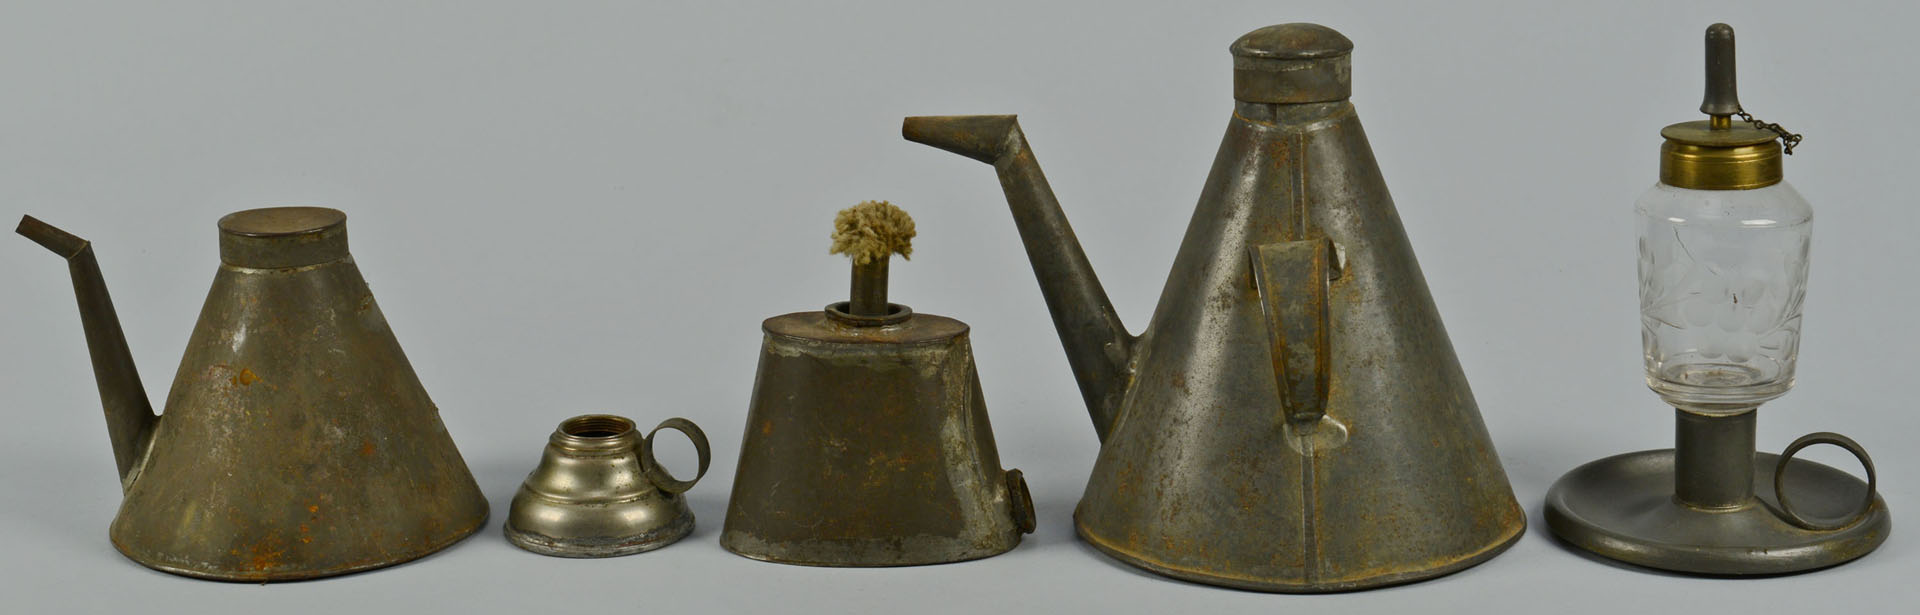 Large grouping of tin lighting related items